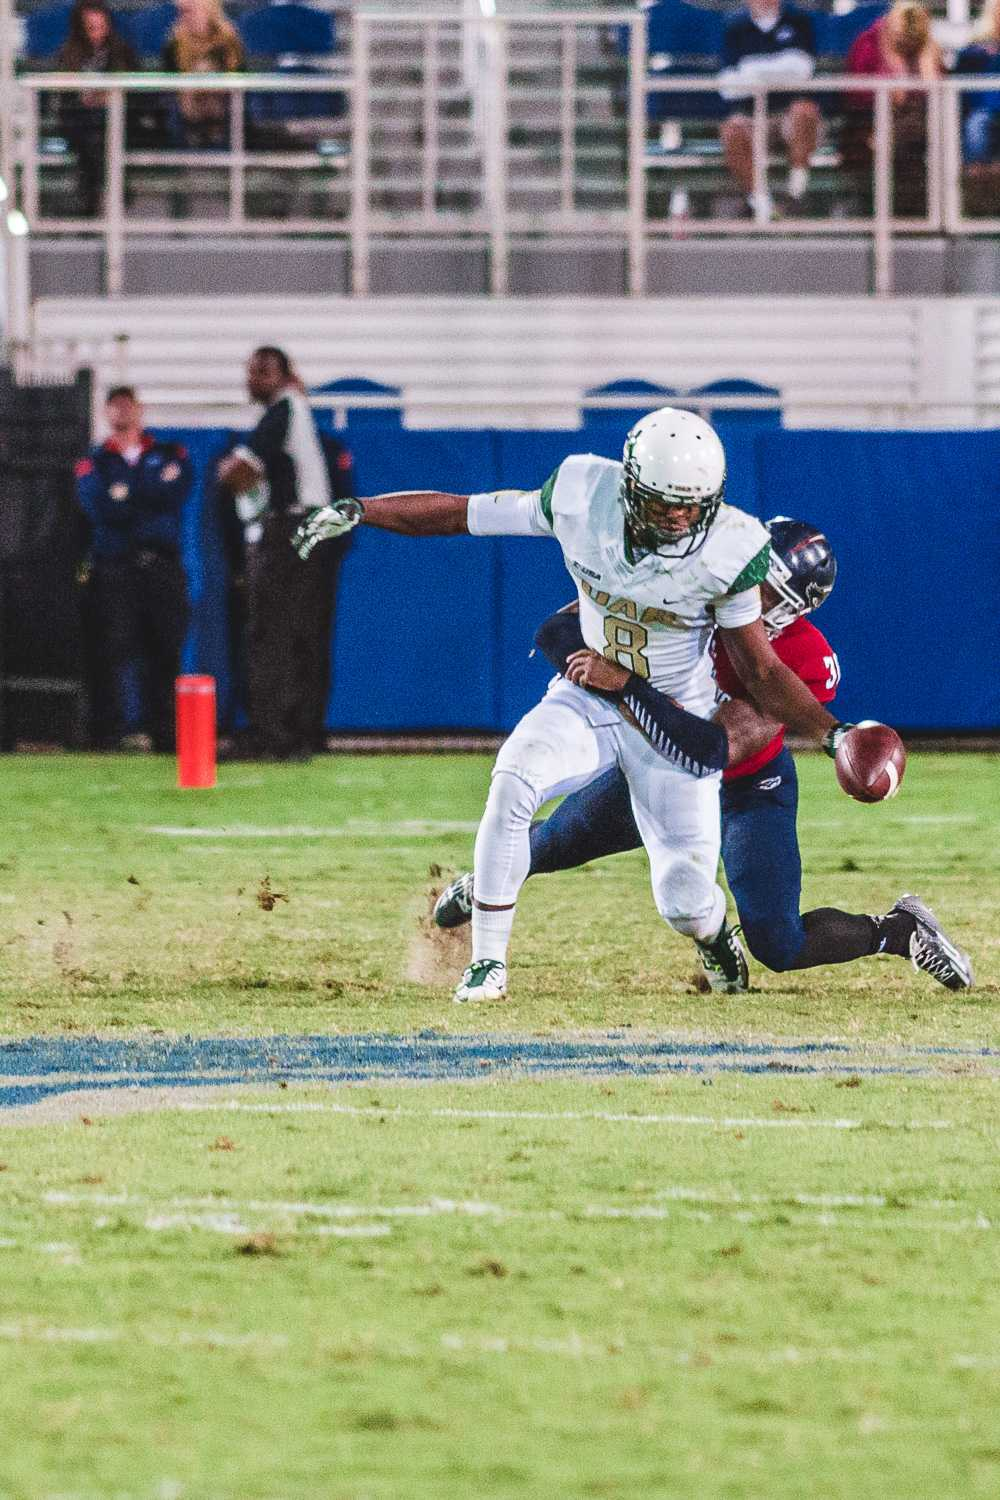 [ Gouthaman Raveendran | Contributing Photographer ] FAU defensive back Anthony Hamilton stops UAB wide receiver Nyiakki Height.